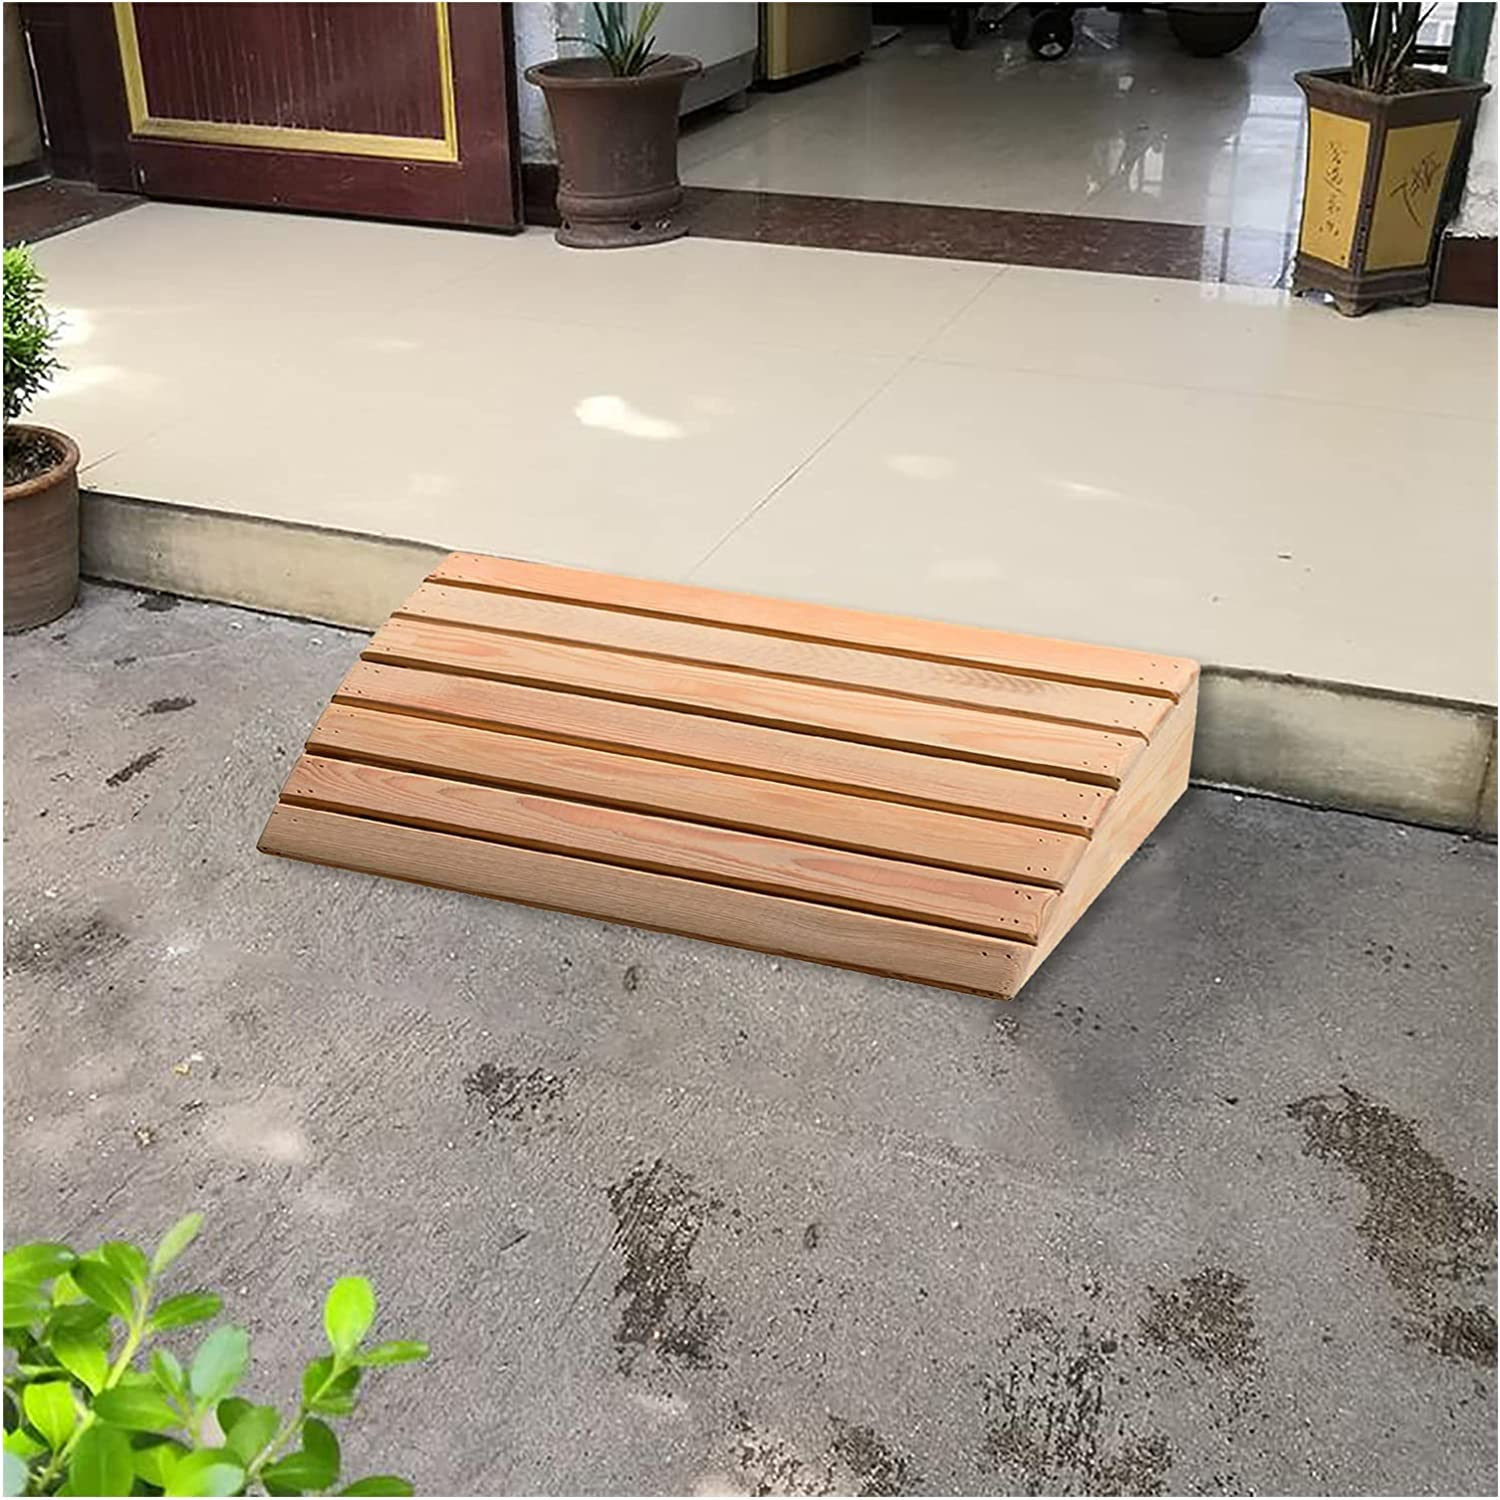 Wooden Threshold Tampa Mall Ramp 4.3 5.9 inch Home 40% OFF Cheap Sale Doorway Entrance R Rise